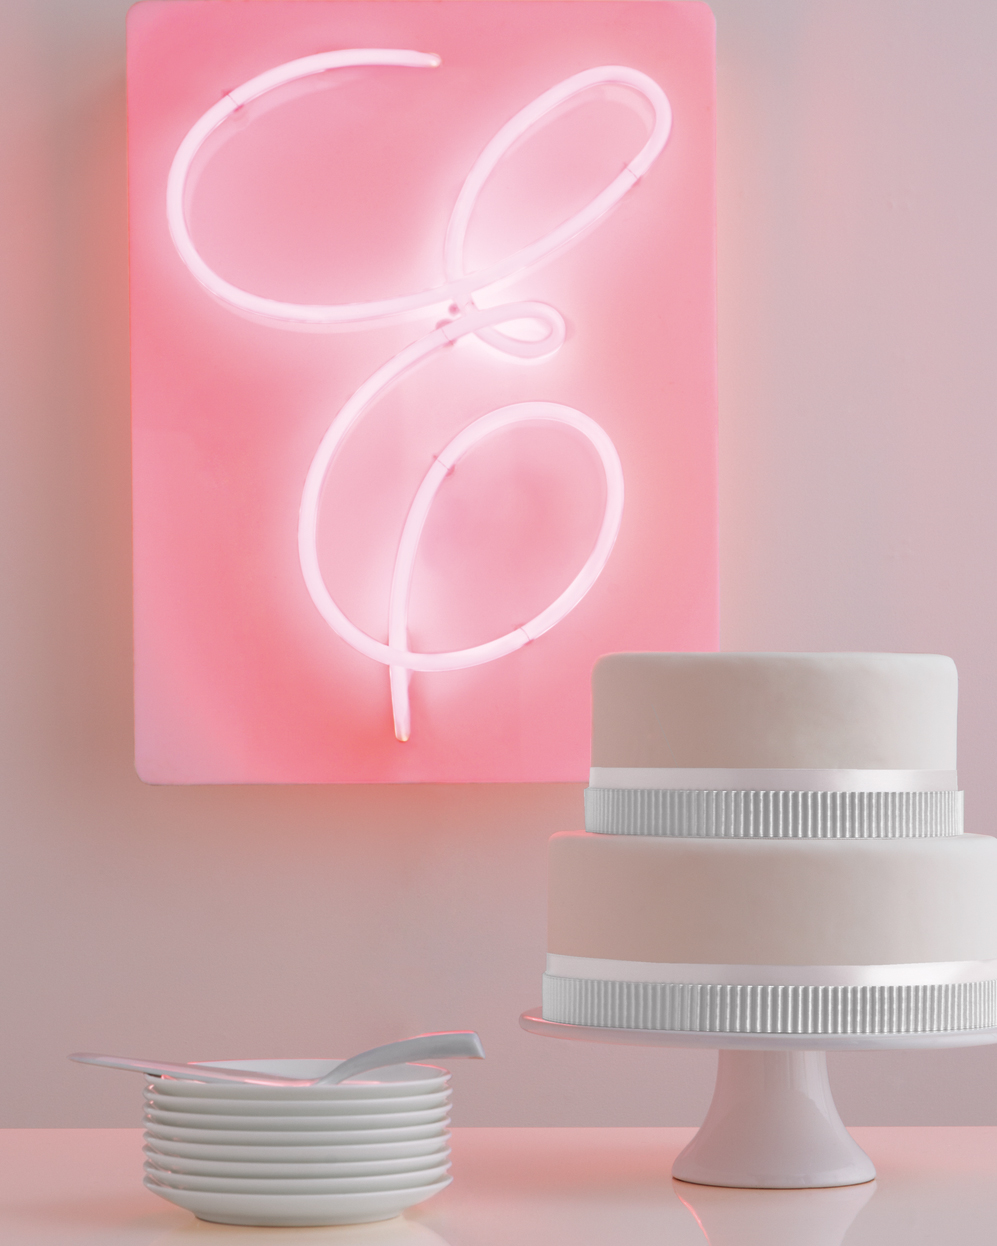 neon-light-cake-mwd108136.jpg